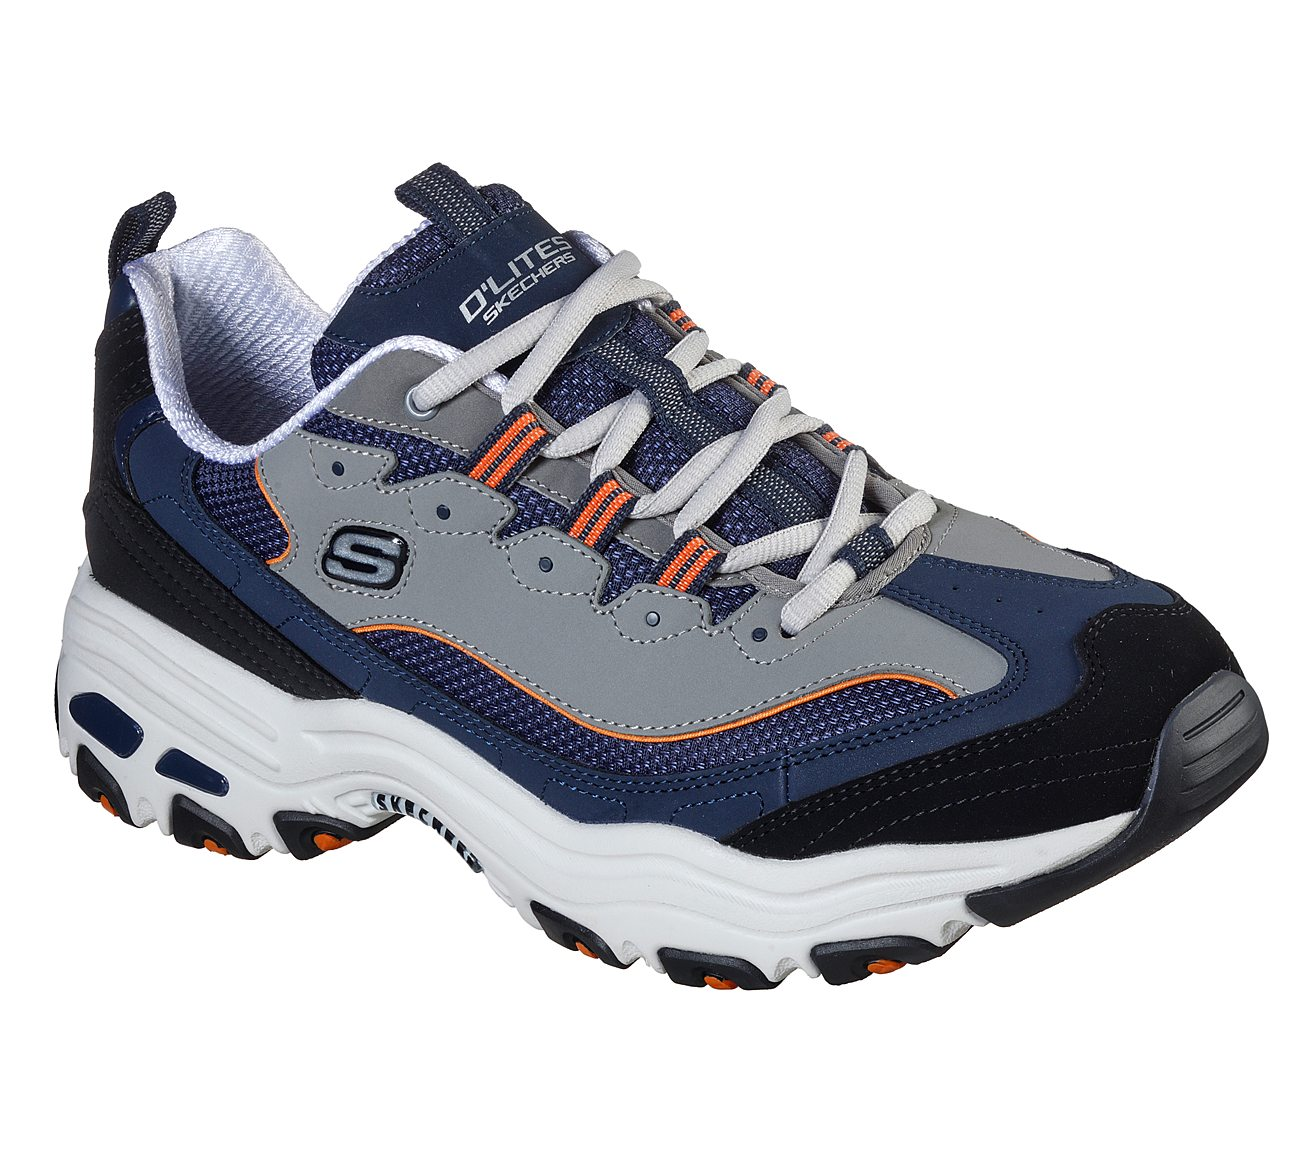 7d6694619dab Buy SKECHERS D'Lites D'Lites Shoes only $70.00